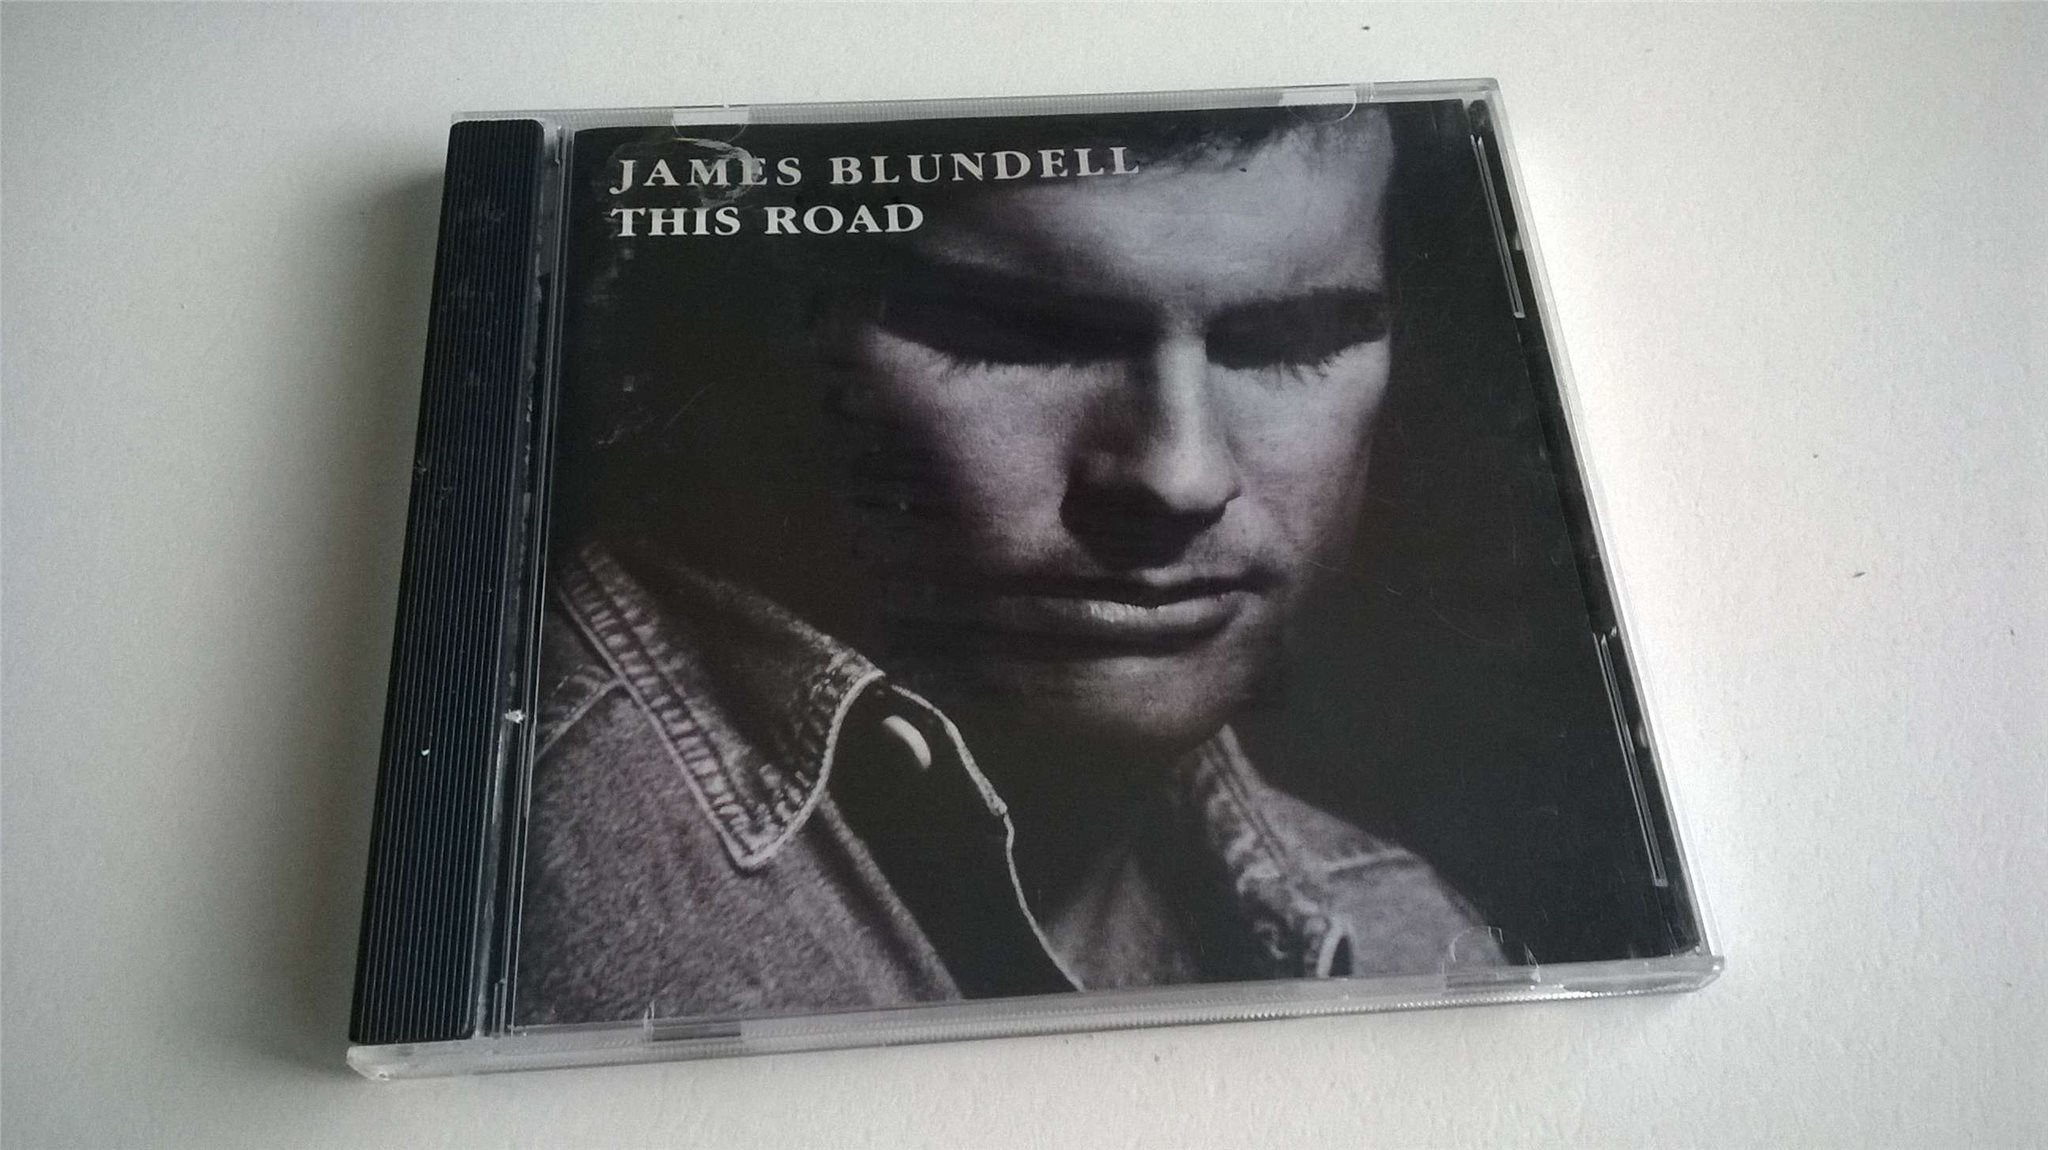 James Blundell - This Road, CD